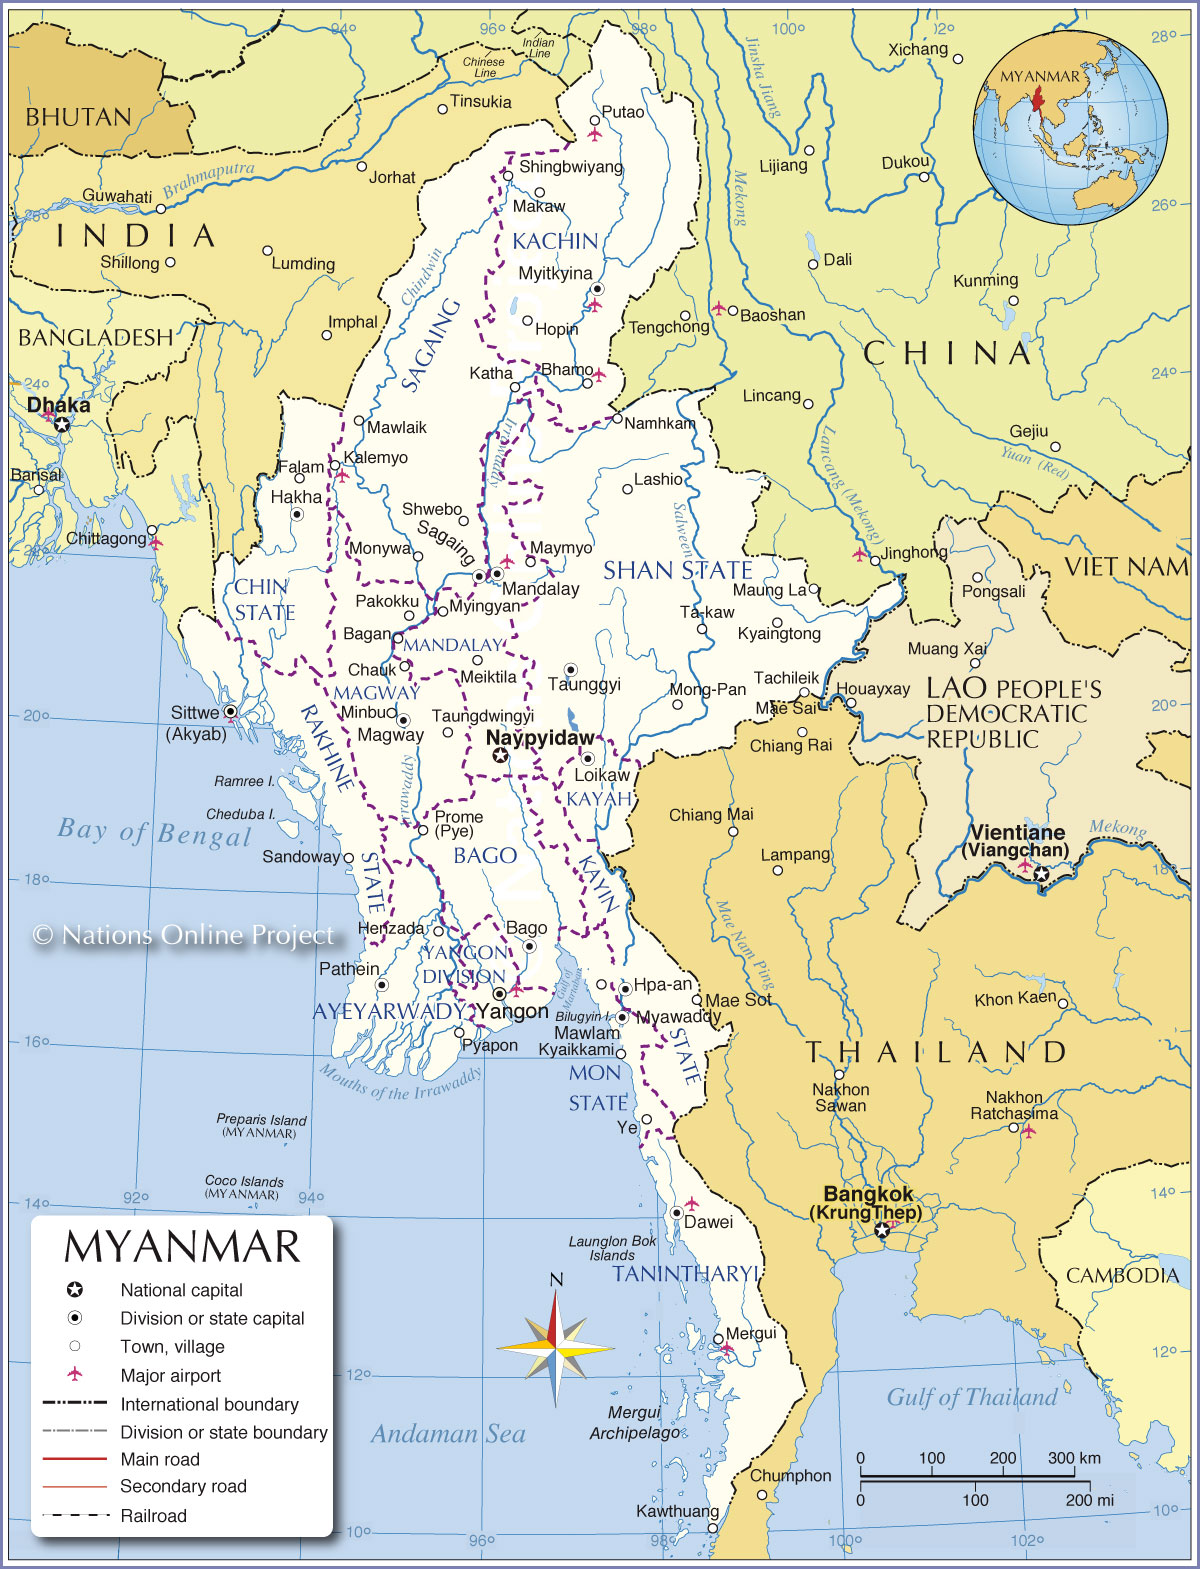 Myanmar-map-from-nationsonline